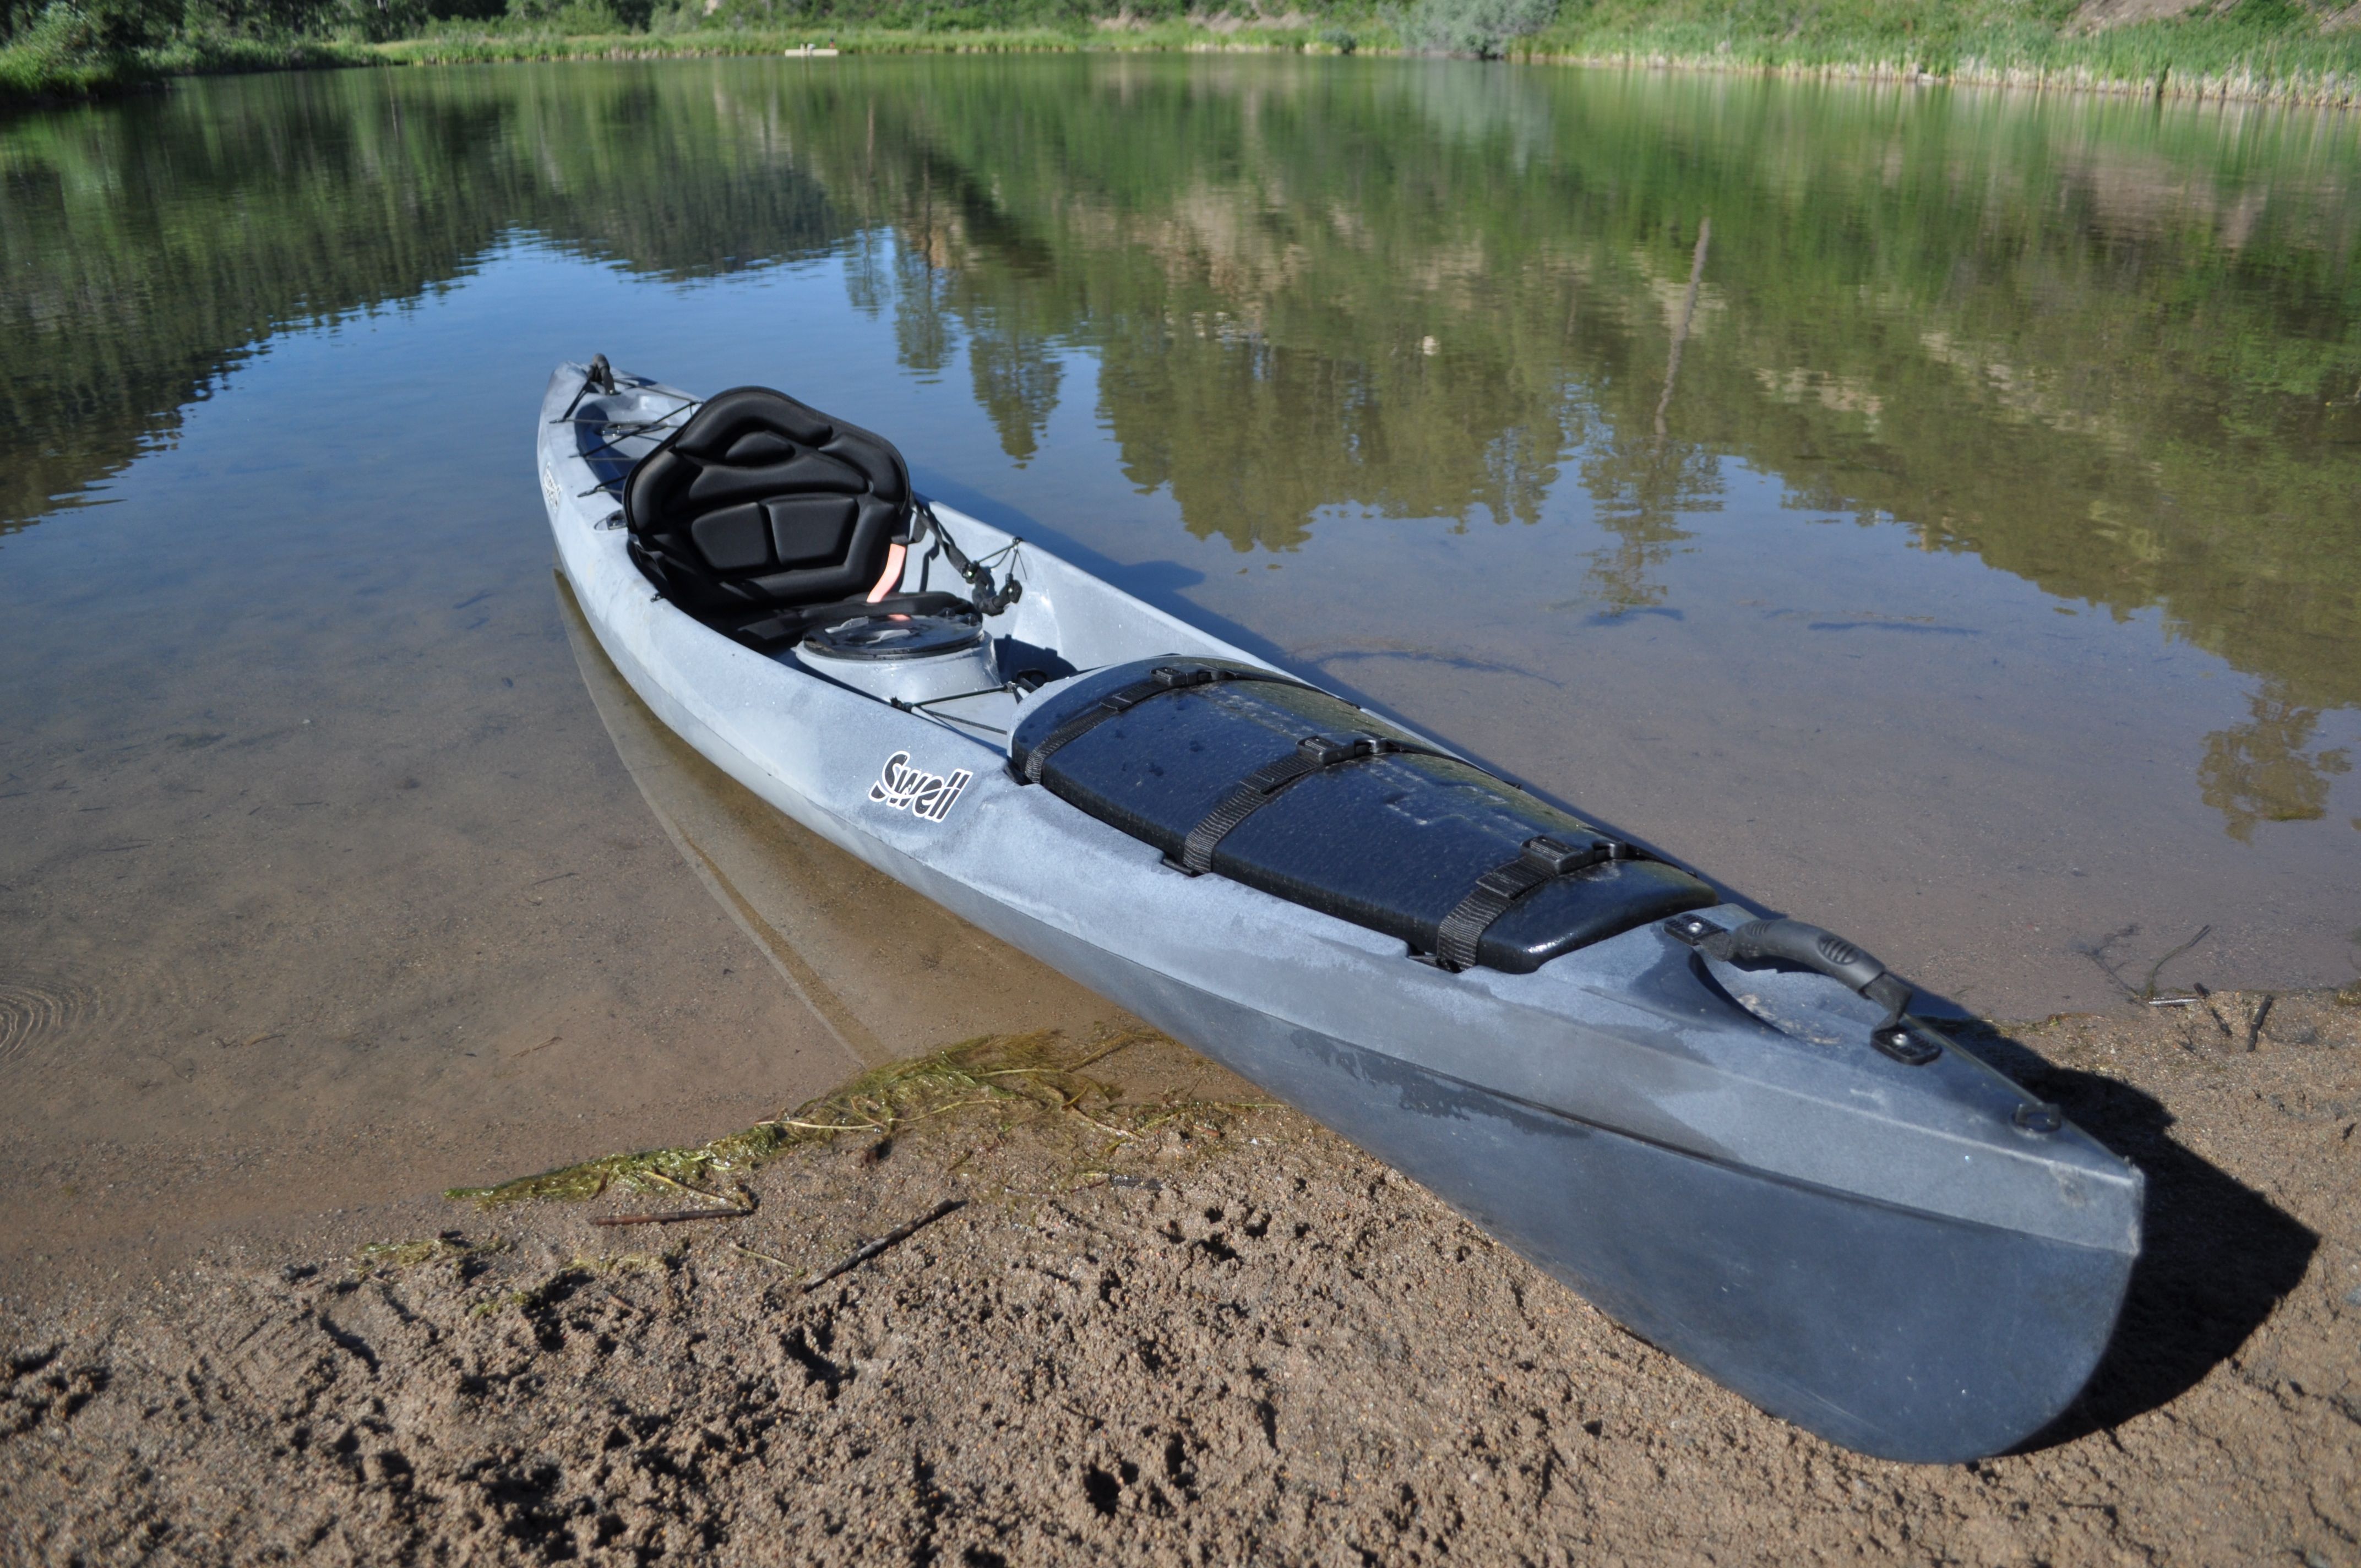 Swell Watercraft Scupper 14: Sit-On-Top Kayak Evolved